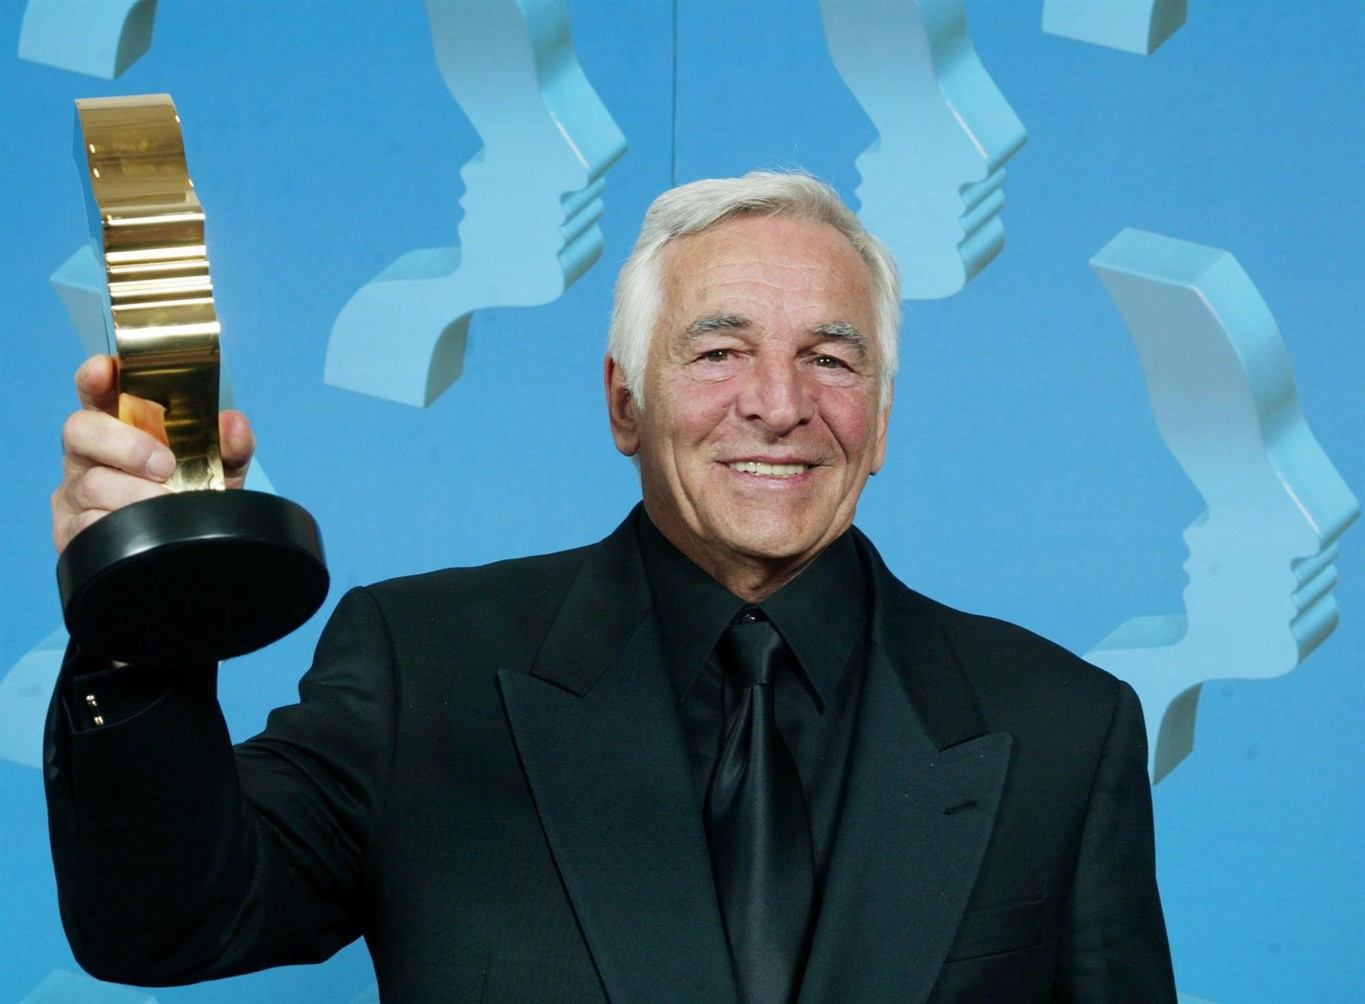 Donnelly Rhodes, 'The Flash' and 'Soap' Actor, Dies at 80